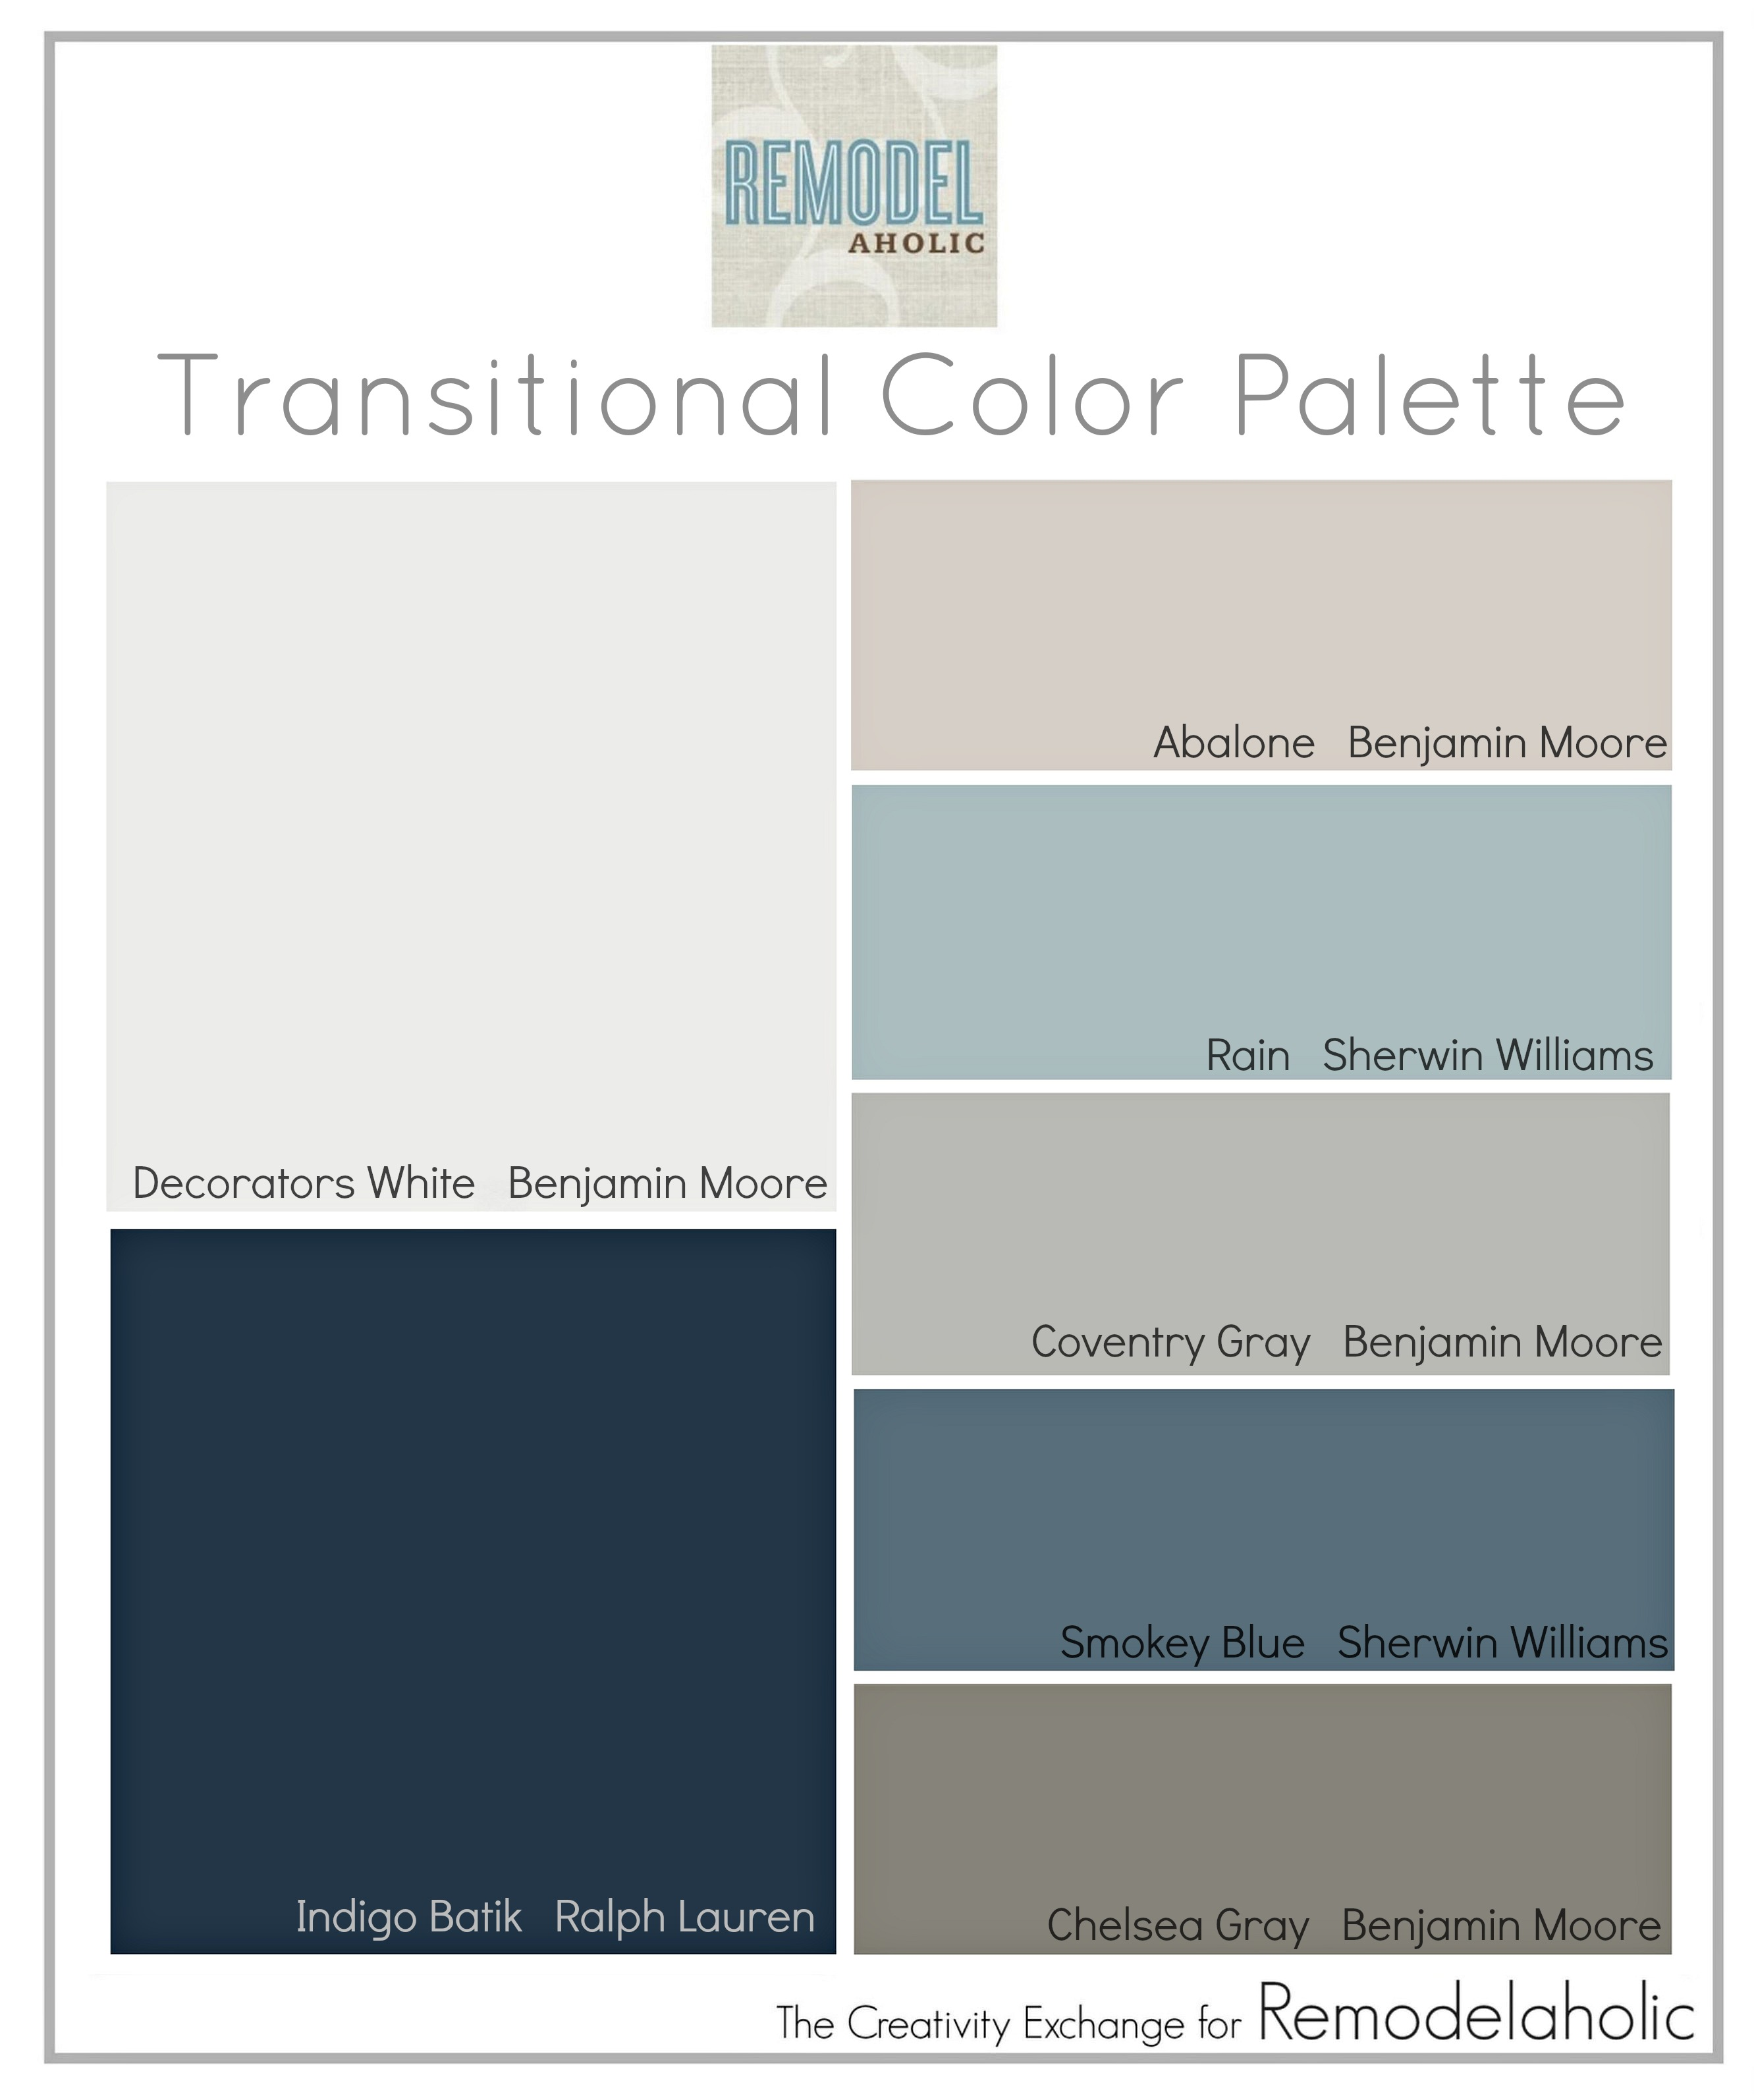 Remodelaholic | Transitional Paint Color Palette on small living room kitchen combo, painting ideas for living room kitchen combo, curtains for living room kitchen combo,